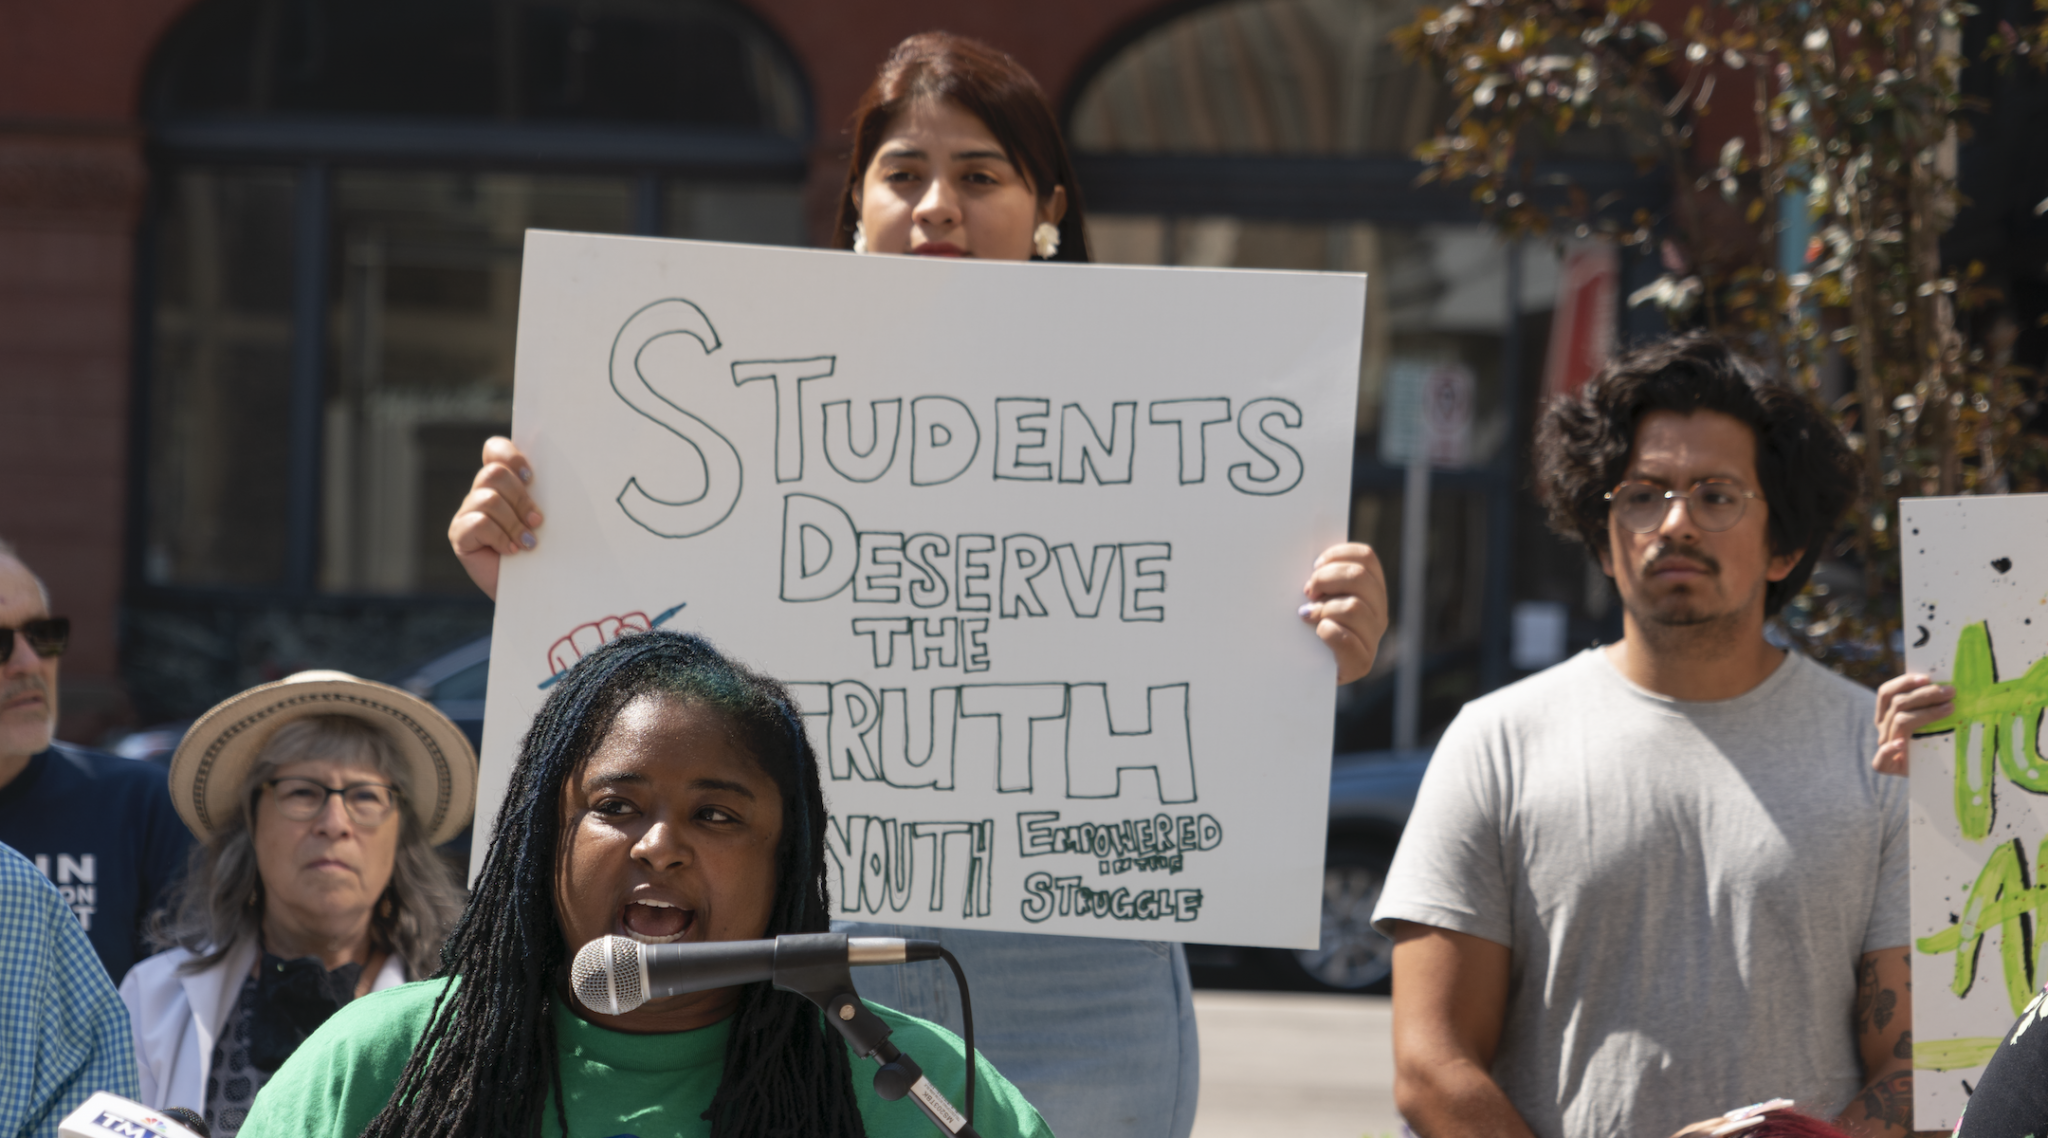 Teachers, students and school board members in the Milwaukee area hold a news conference opposing new bills seeking to bar schools from teaching ideas linked to critical race theory, June 12, 2021. (Photo/Flickr-Milwaukee Teachers' Education Association)